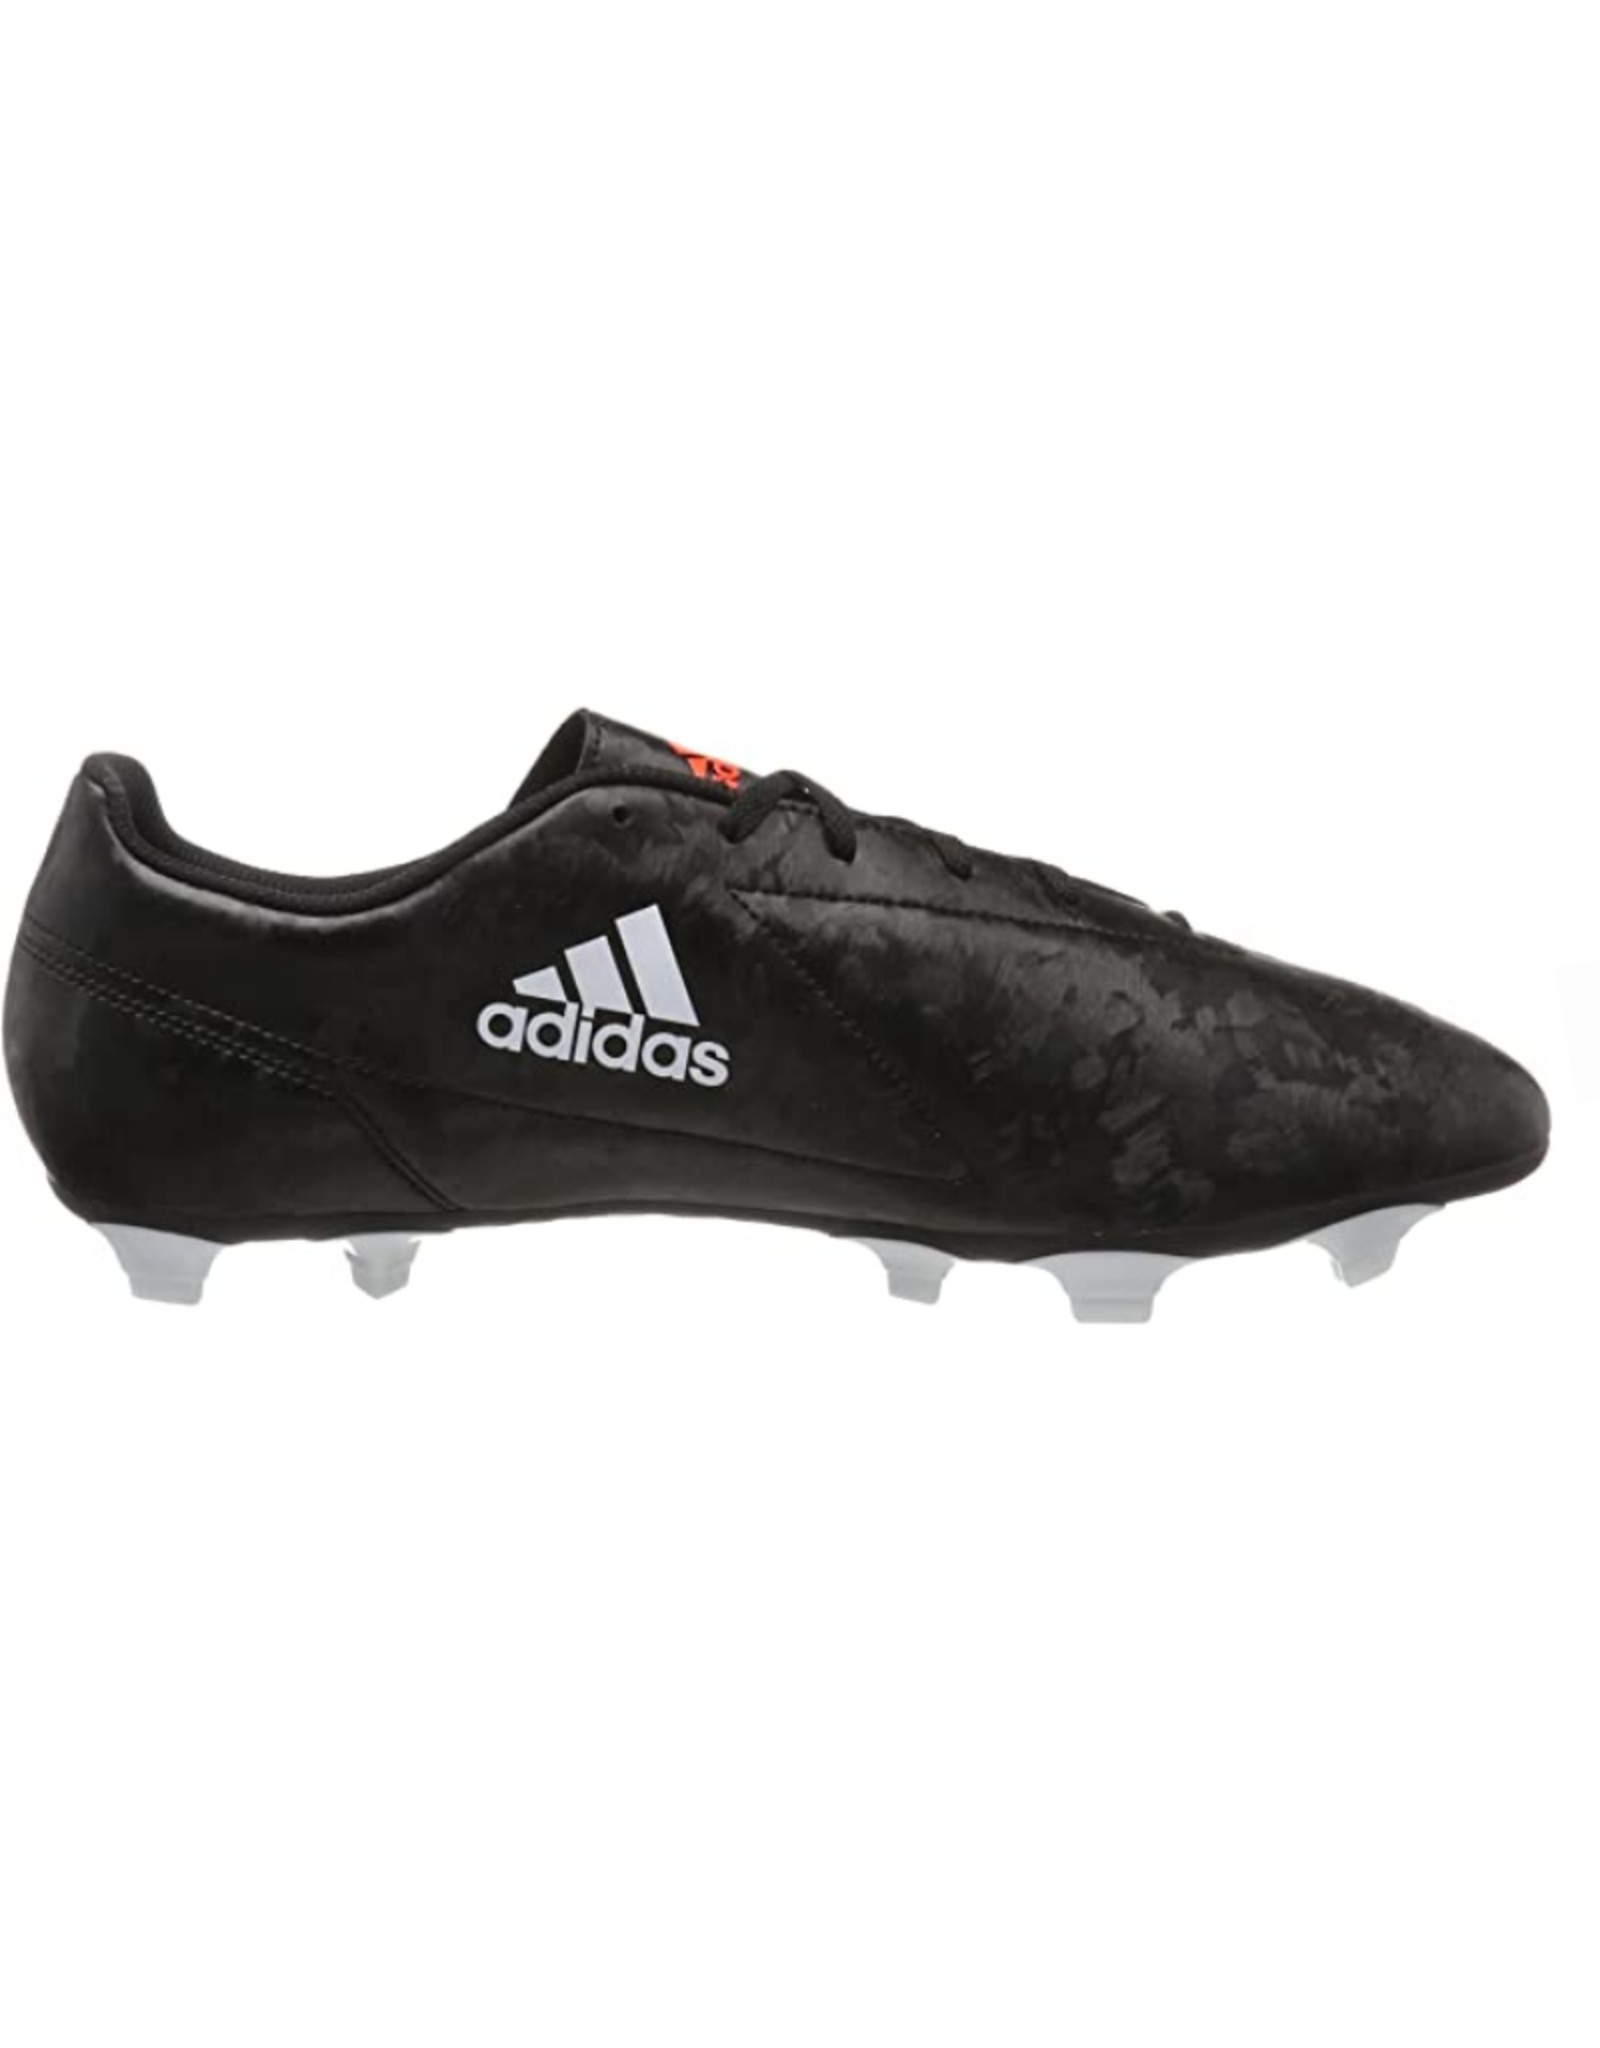 Adidas Adidas Youth Conquisto Soccer Cleat Black